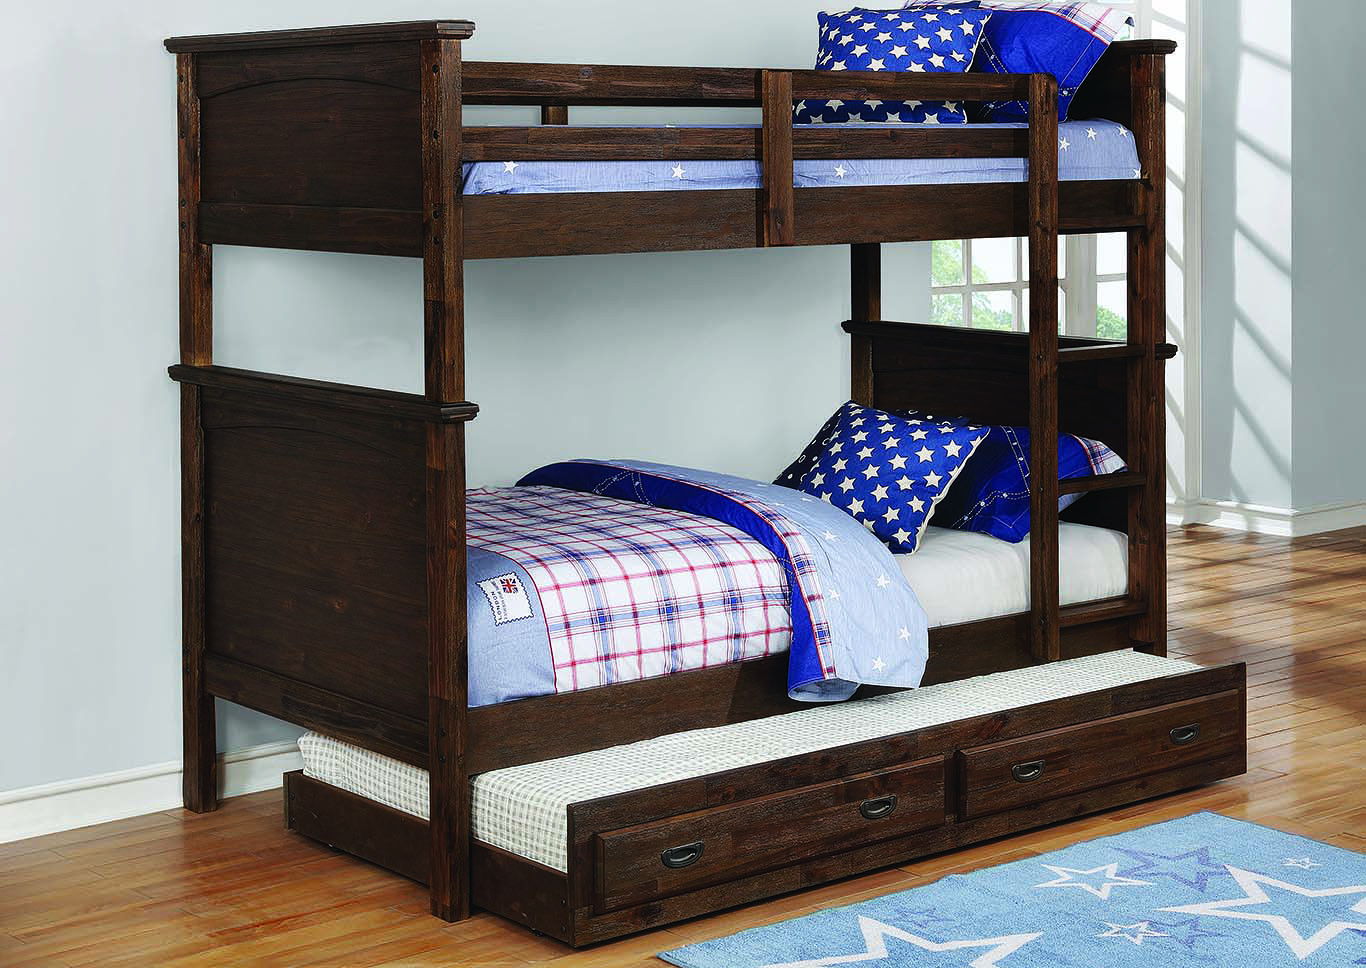 T/t Bunk Bed,Coaster Furniture